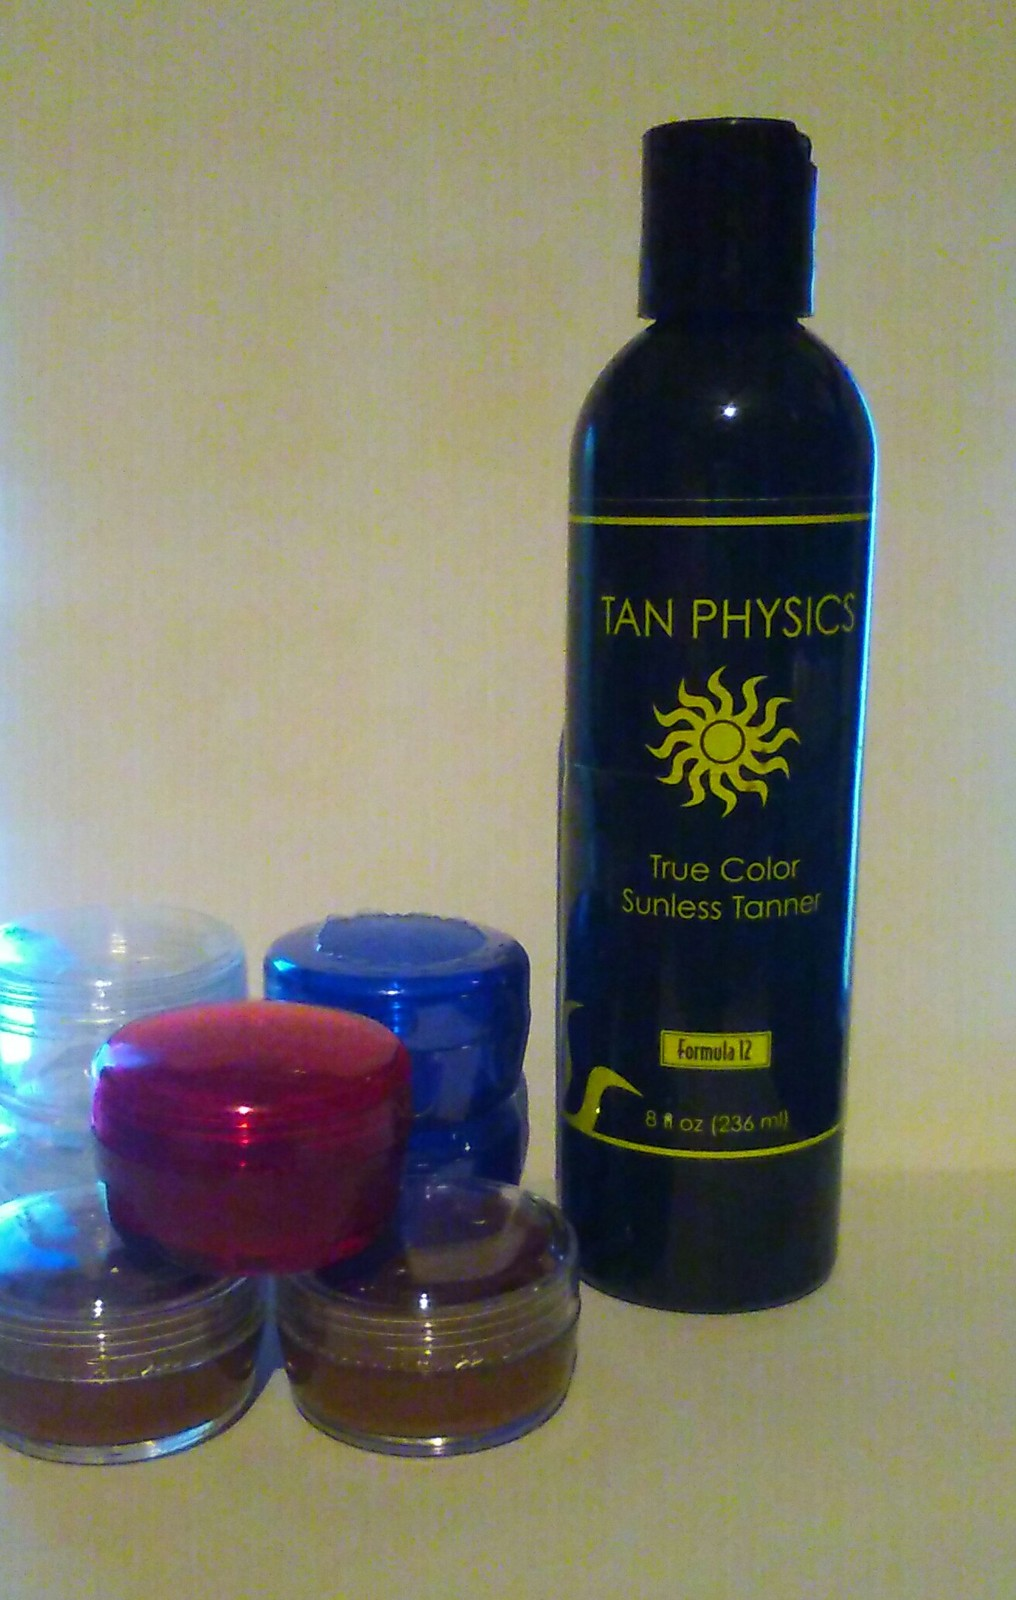 Tan physics coupon code